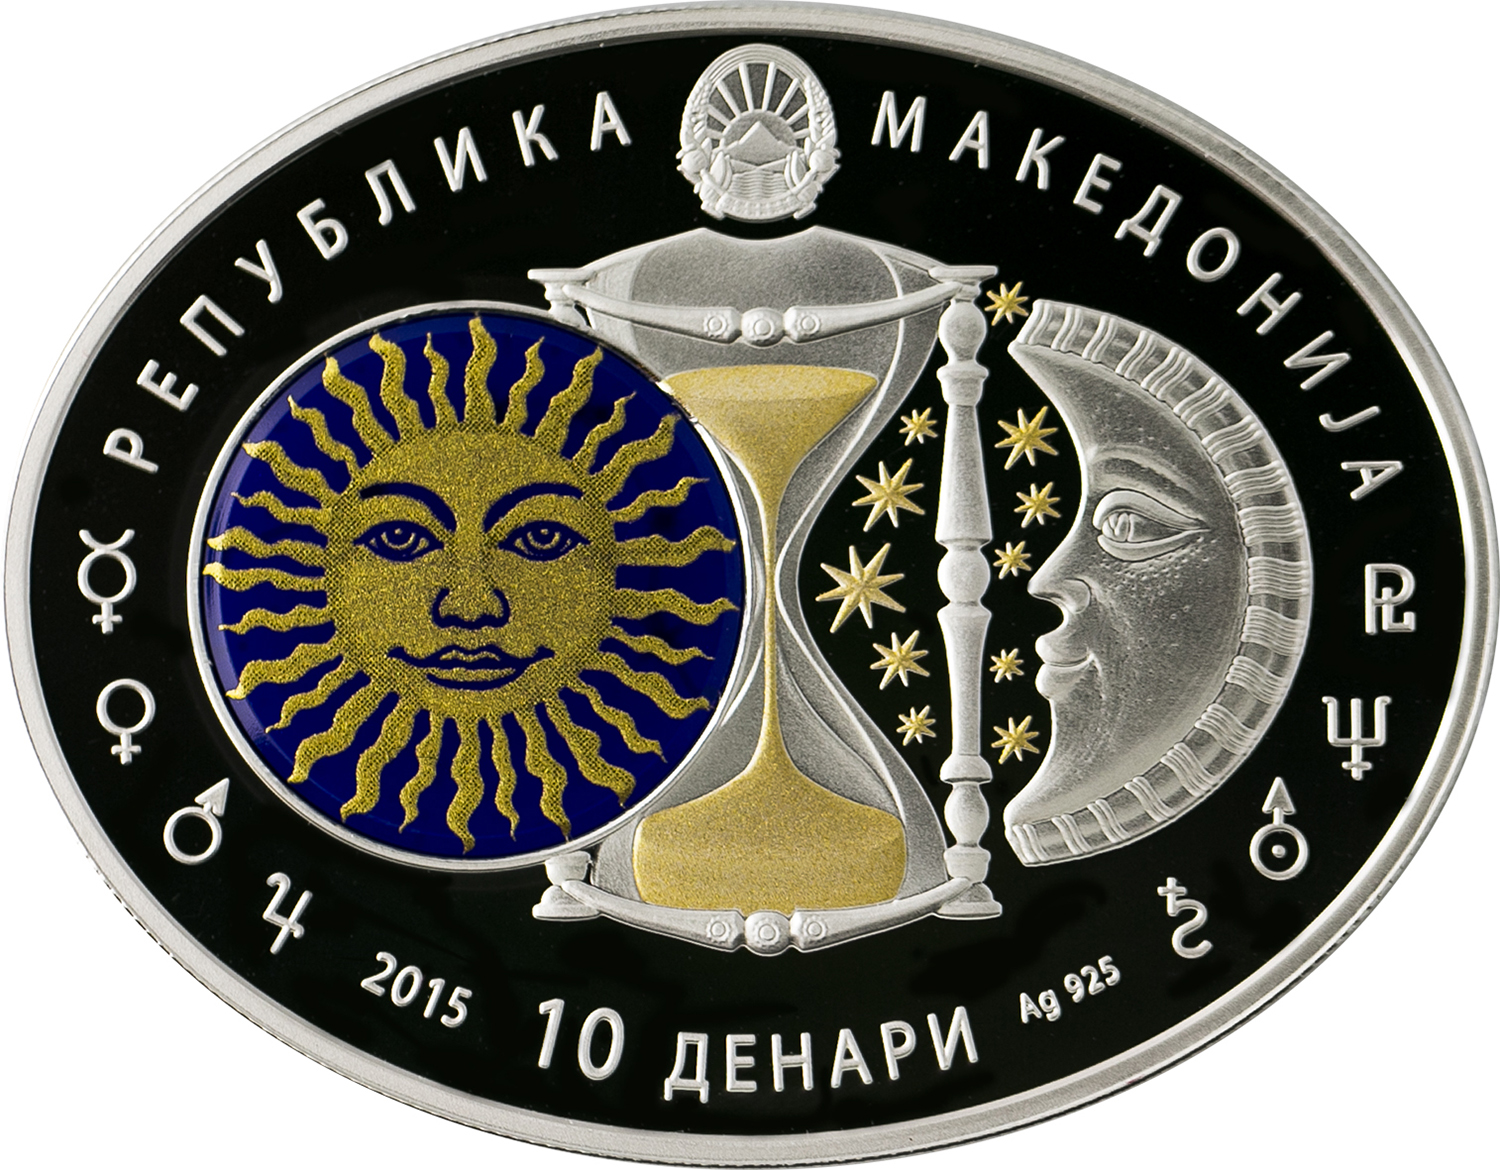 2015 Macedonia Silver Proof Zodiac Sign (Aries)